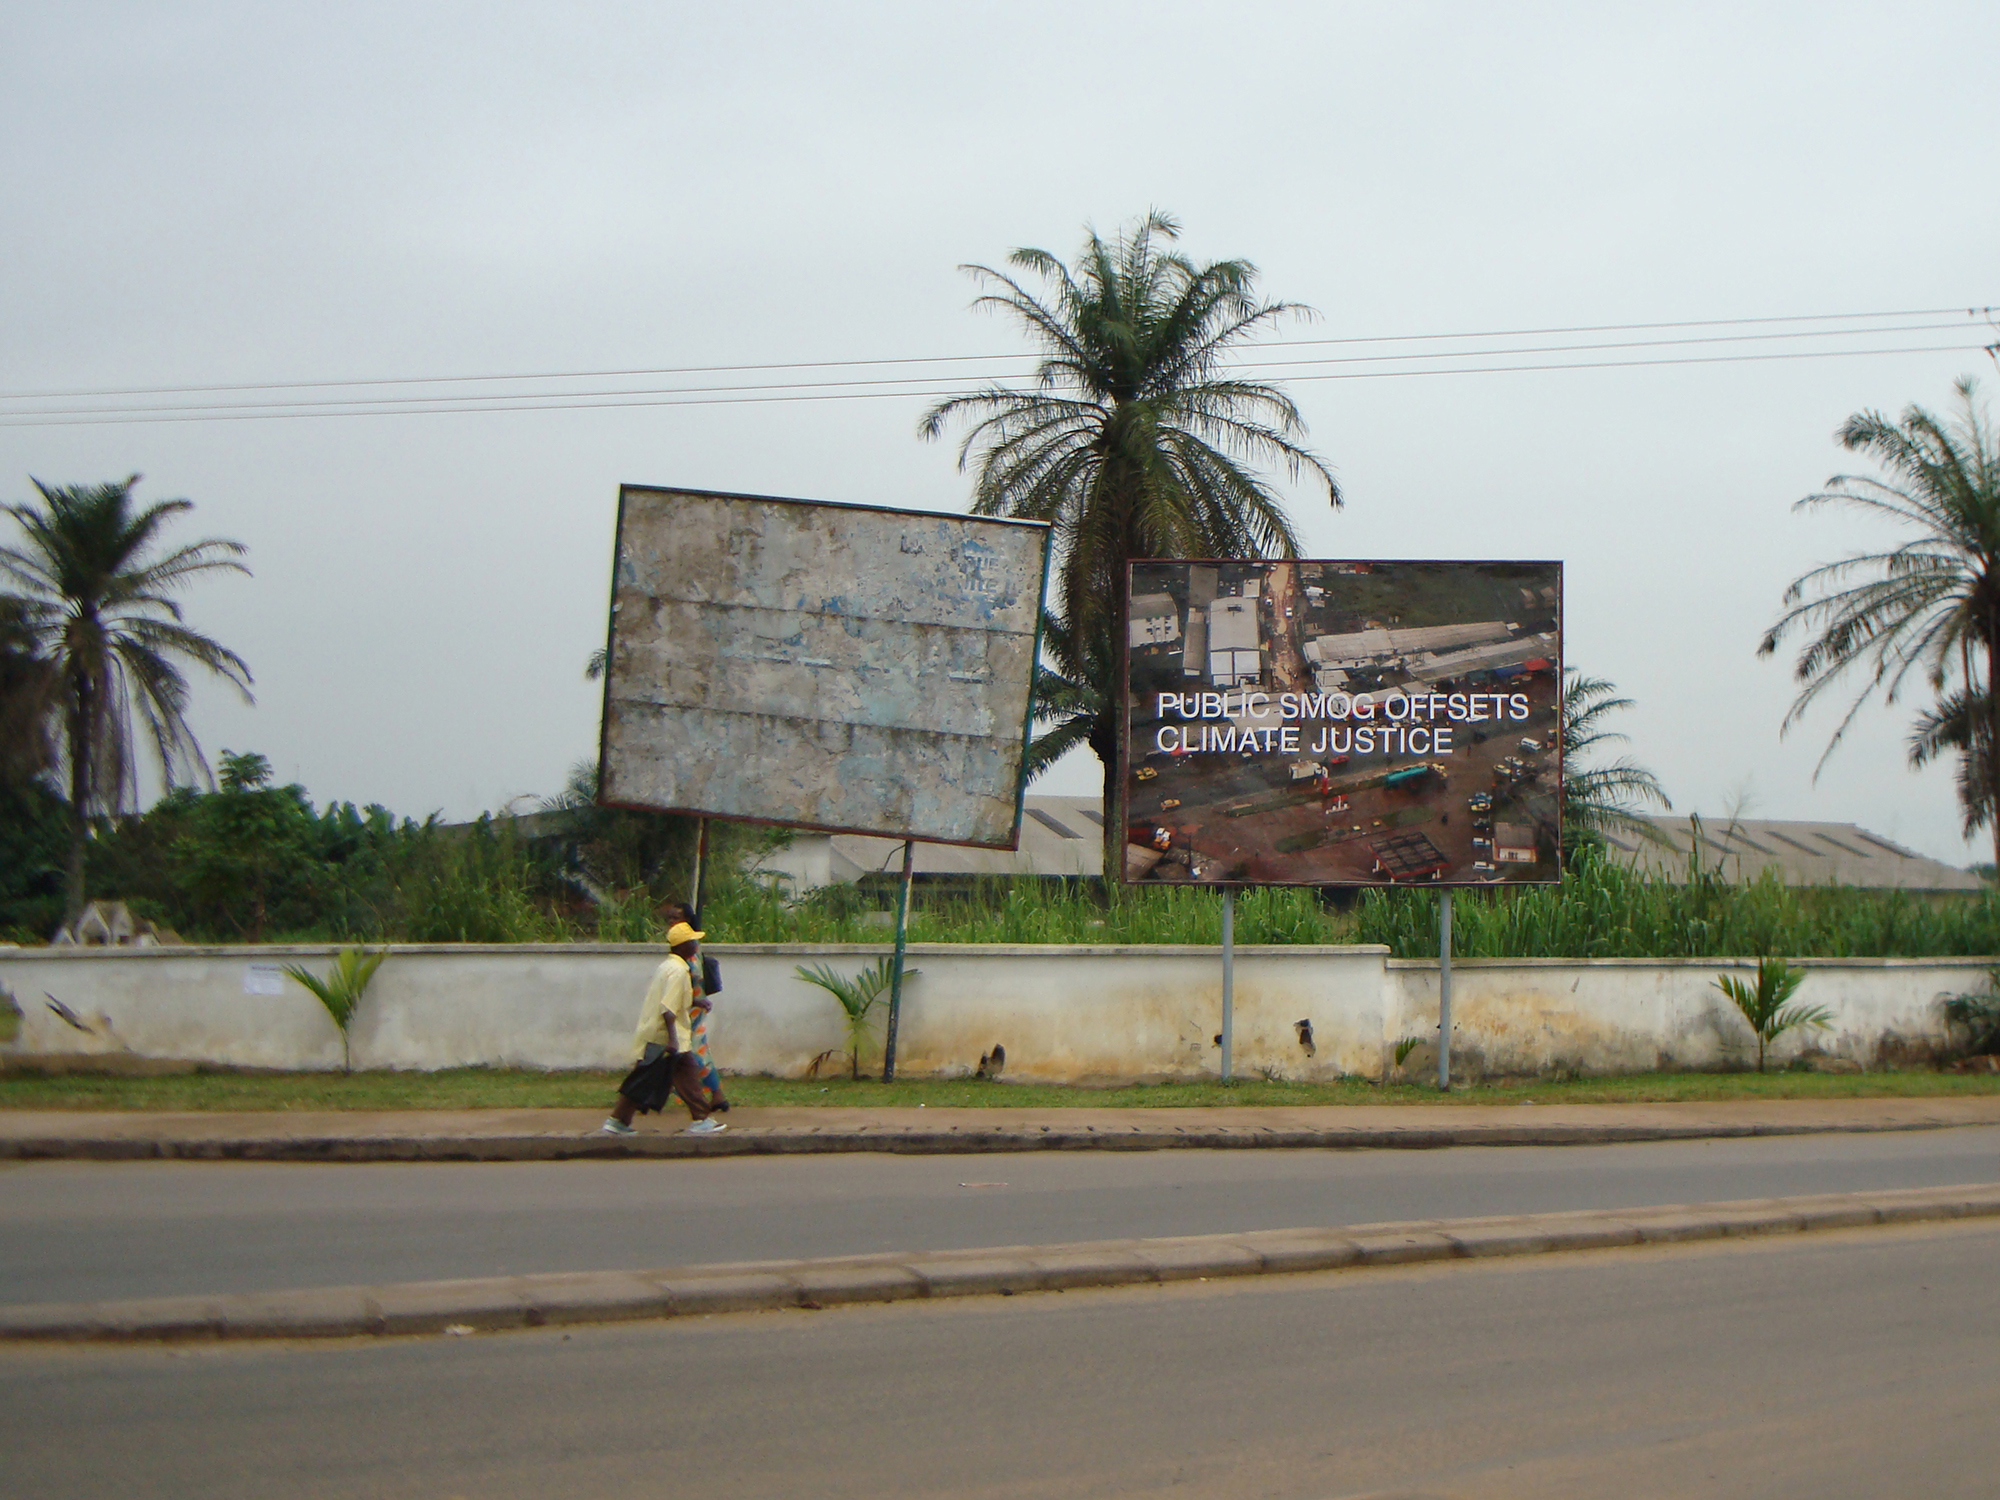 Figure 2. Public smog offsets climate justice. Billboard, Ndokoti, Douala, Cameroon, 2009. Image: Benoît Mangin. Part of Amy Balkin, Public Smog, used with permission